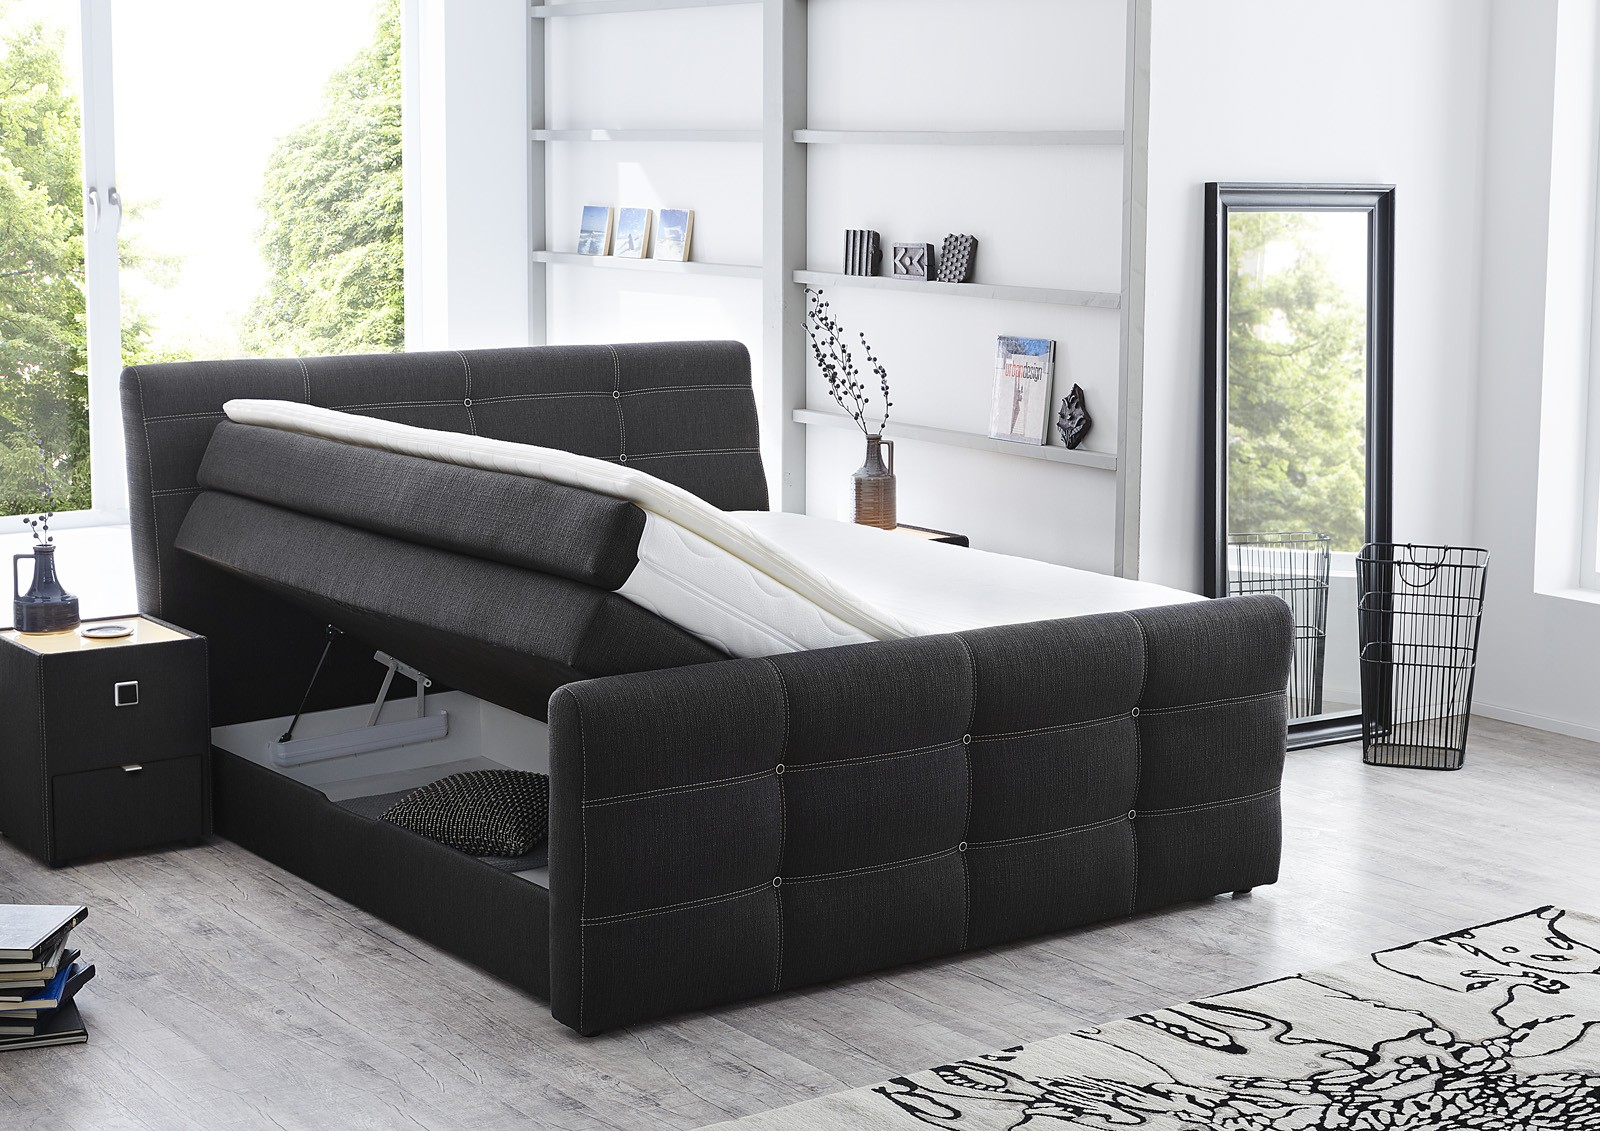 bett boxspringbetten mit bettkasten auf bettenbox boxspringbett mit. Black Bedroom Furniture Sets. Home Design Ideas